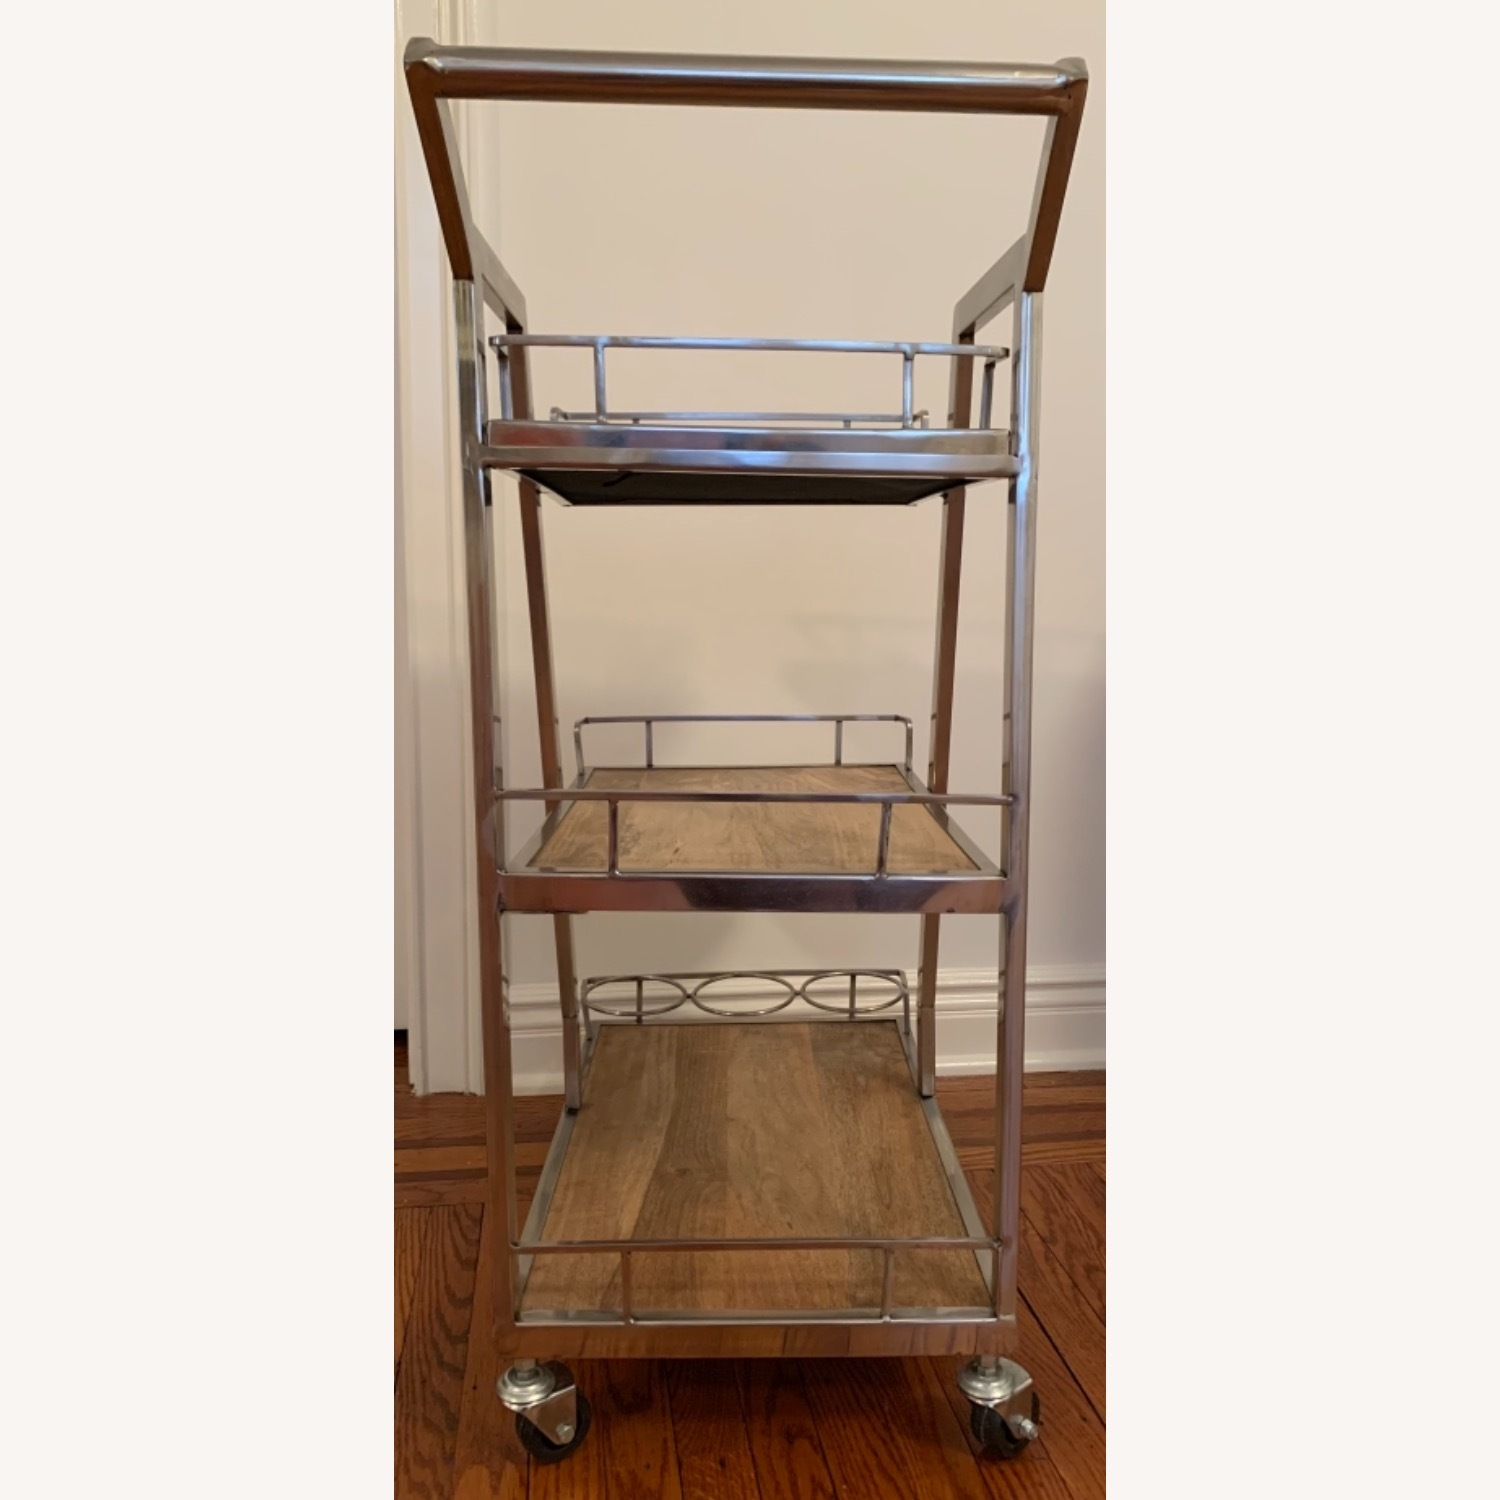 3 Tier Silver And Wood Bar Service Cart - image-4